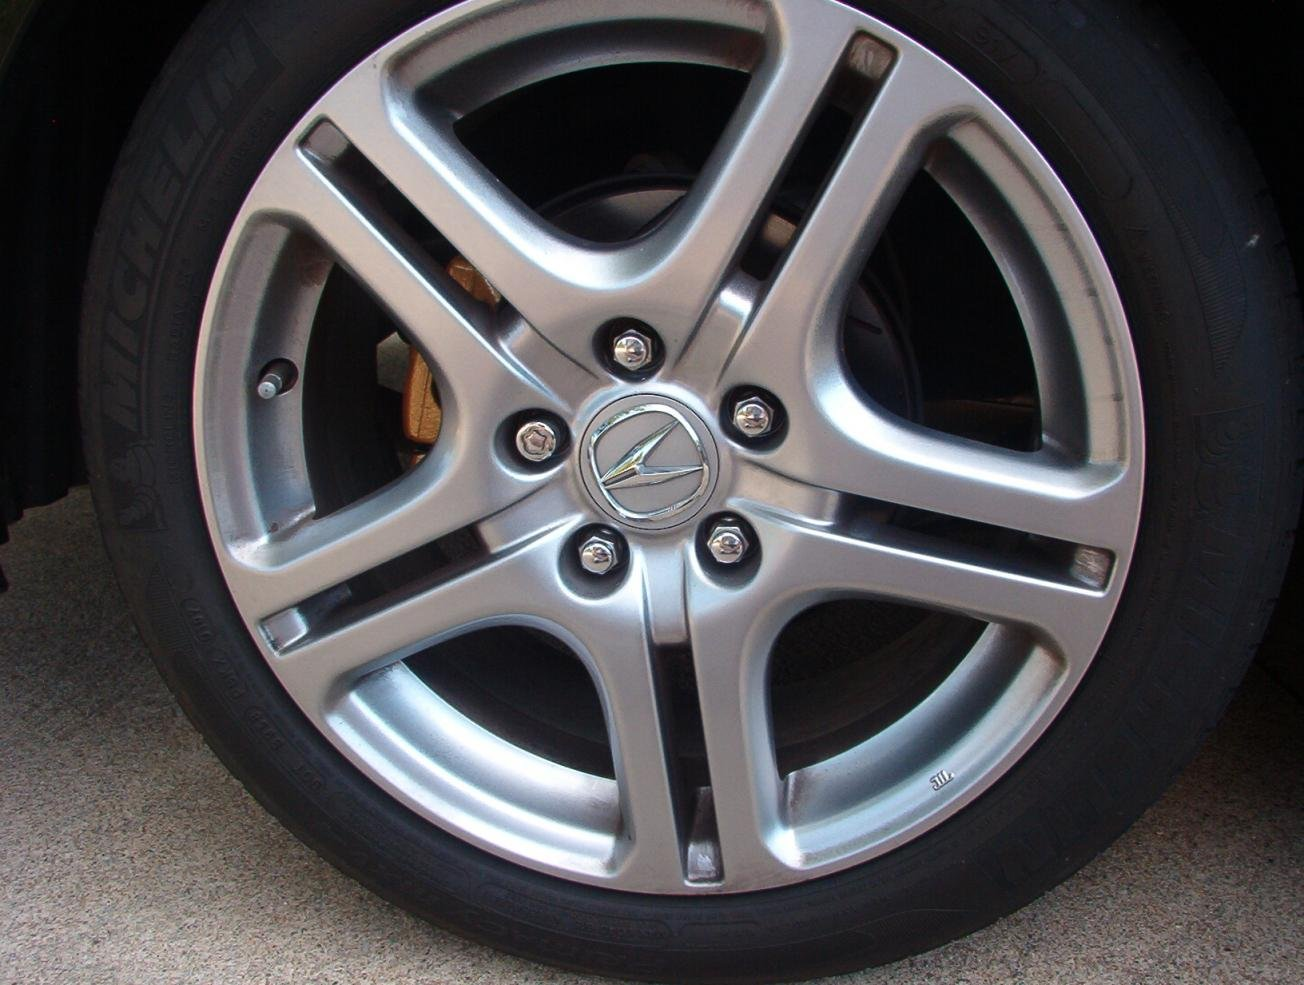 Acura ASPEC Rims Inch Rims Only Tired Not Included Acura - Acura 17 inch rims